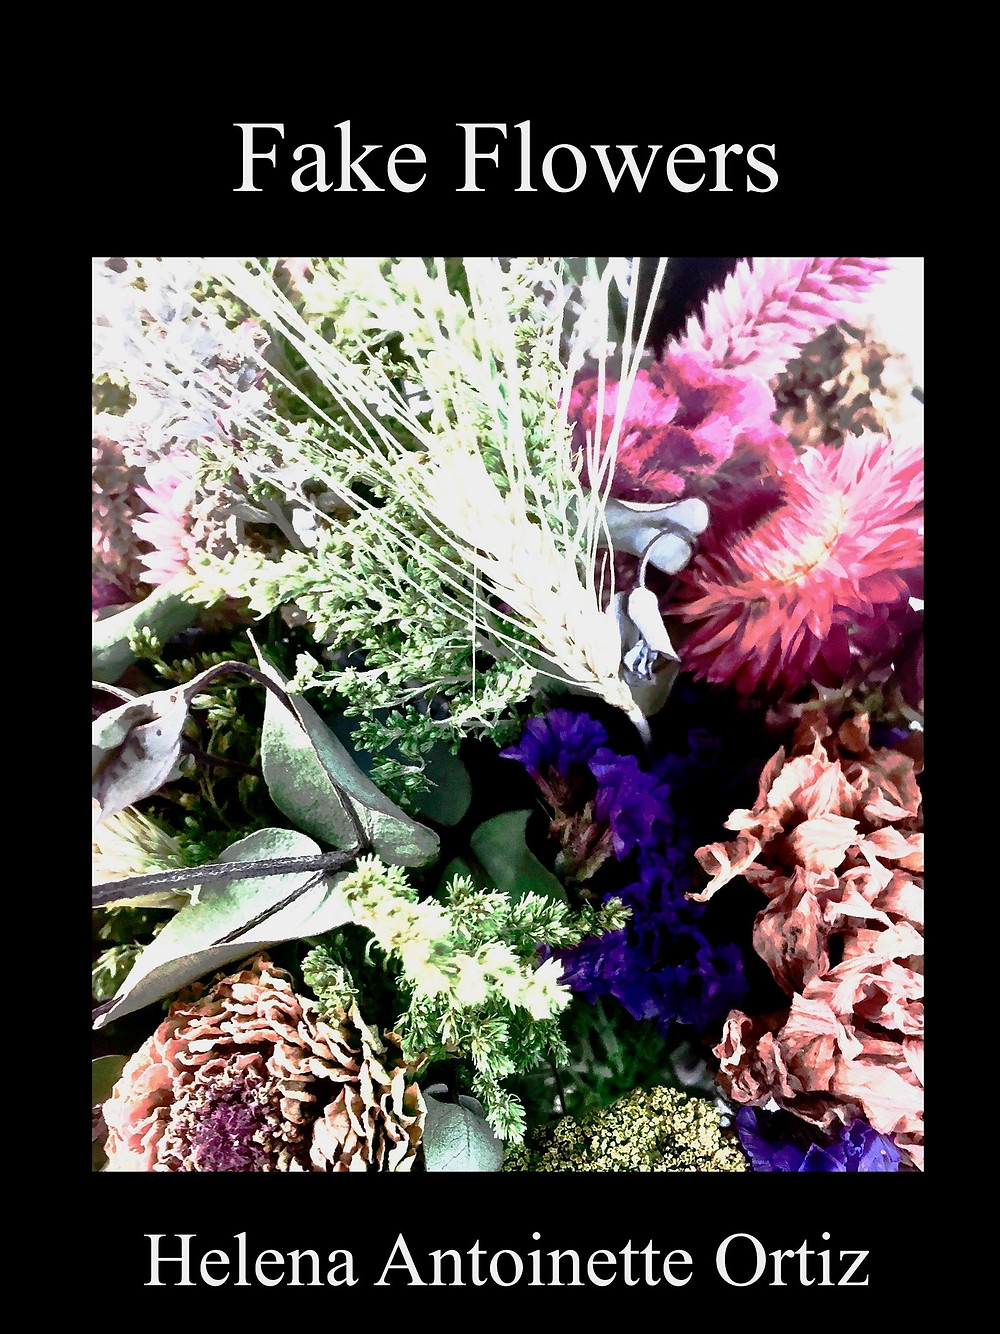 Marmosetic Wolves | Tuesday's Bones | Cover for the ebook Fake Flowers which is about a toxic relationship of the poet, Helena Ortiz's.